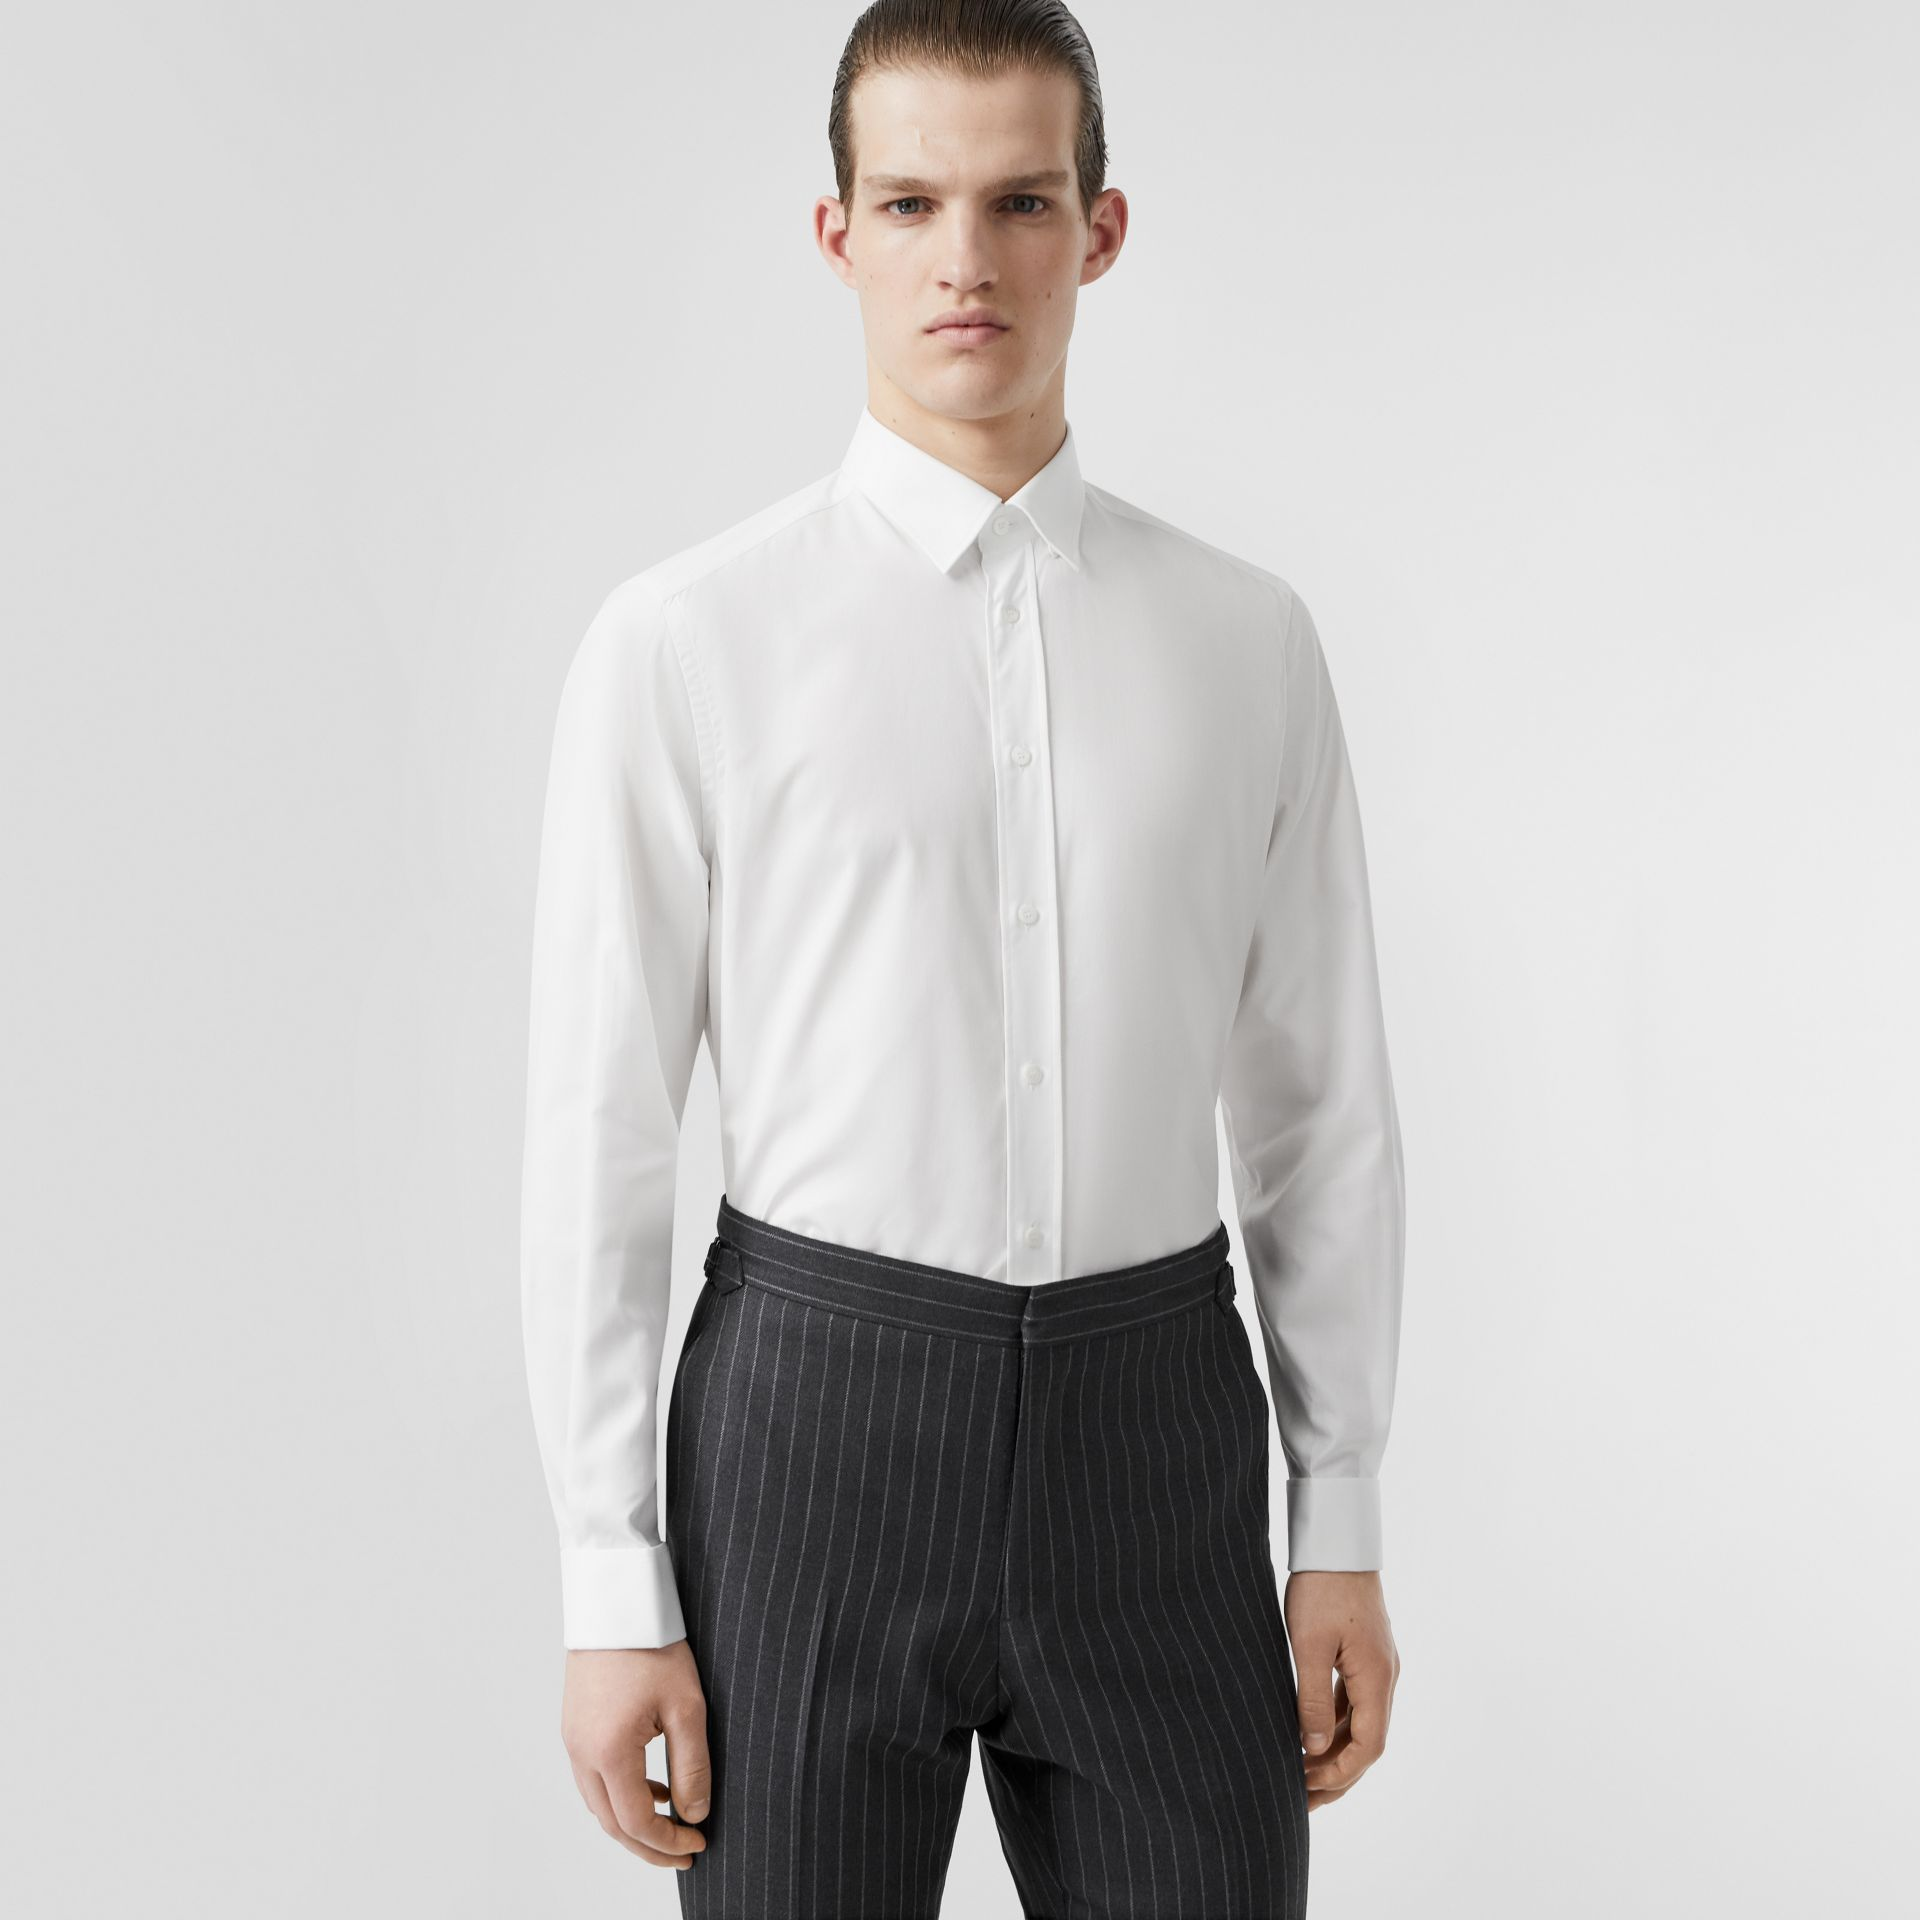 Classic Fit Monogram Motif Cotton Oxford Shirt in White - Men | Burberry Canada - gallery image 0